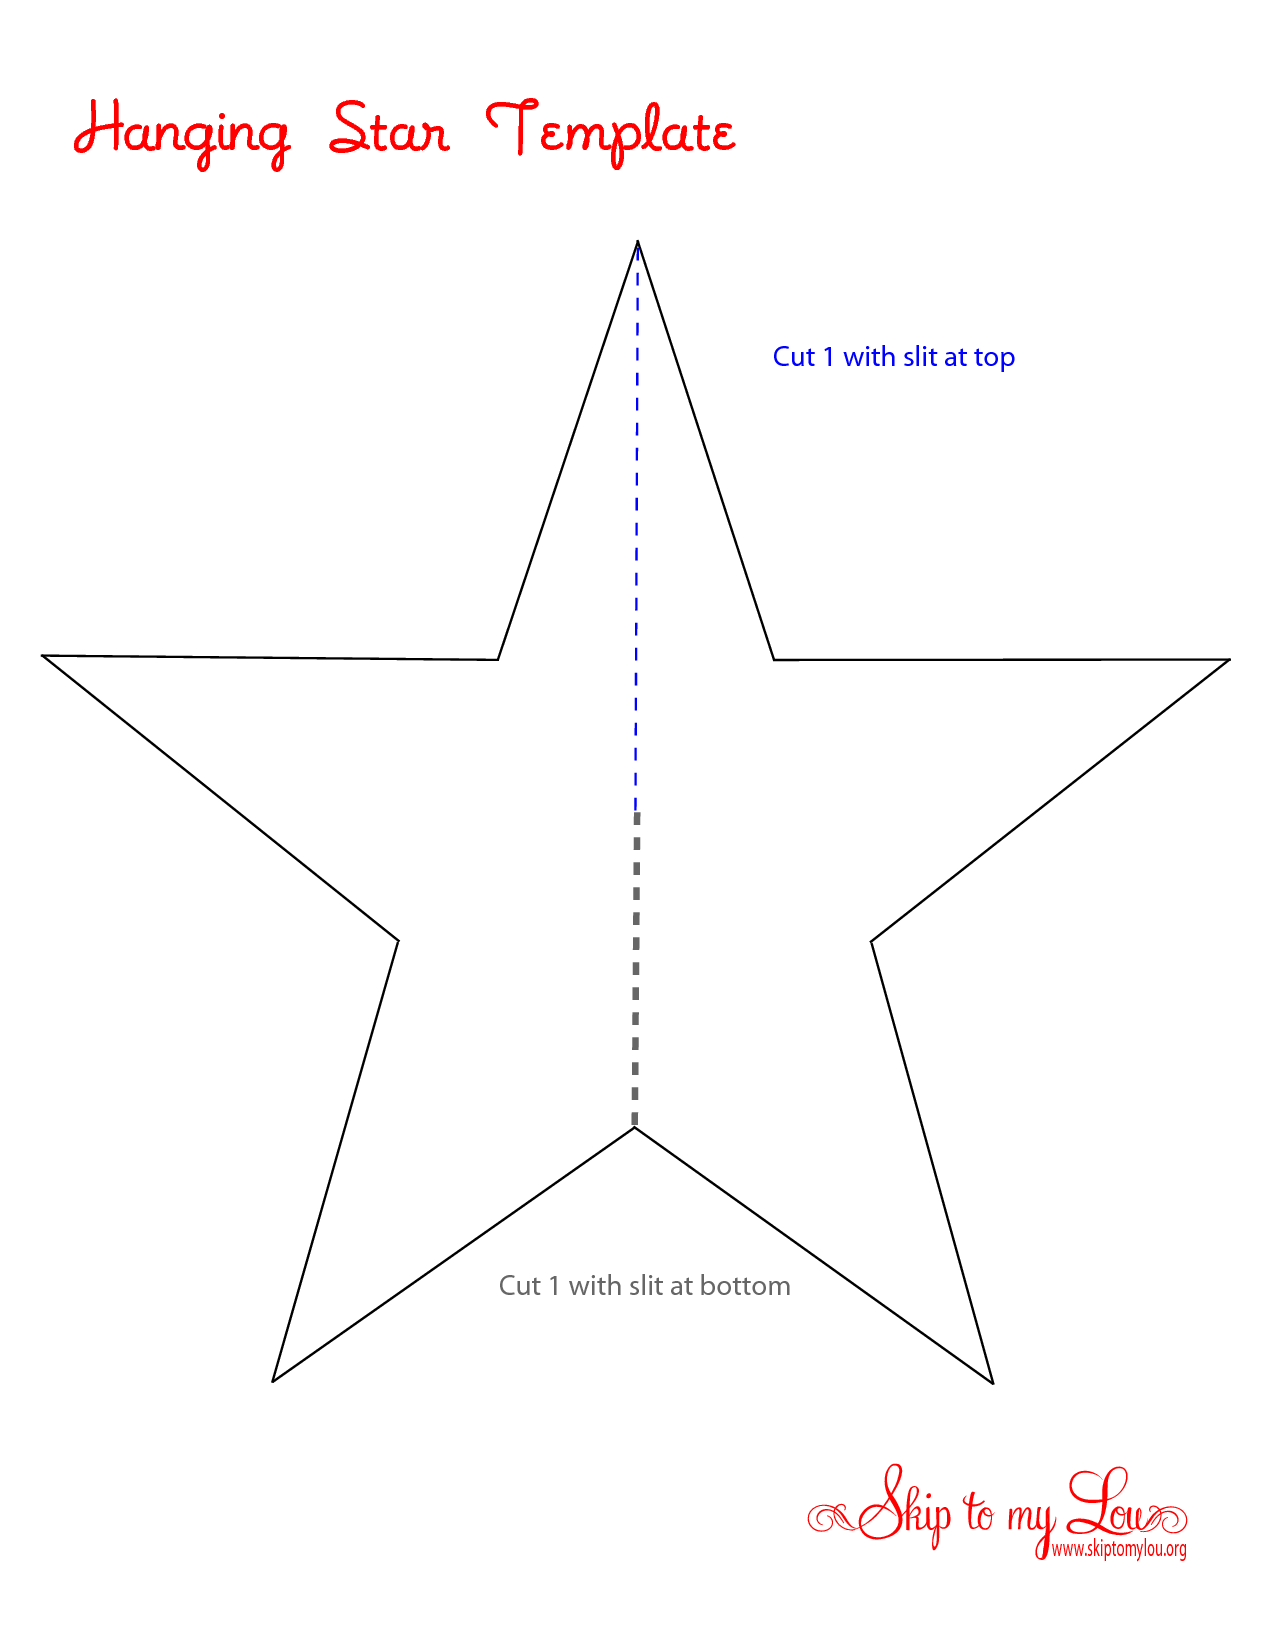 6 Images of Extra Large Star Template Printable